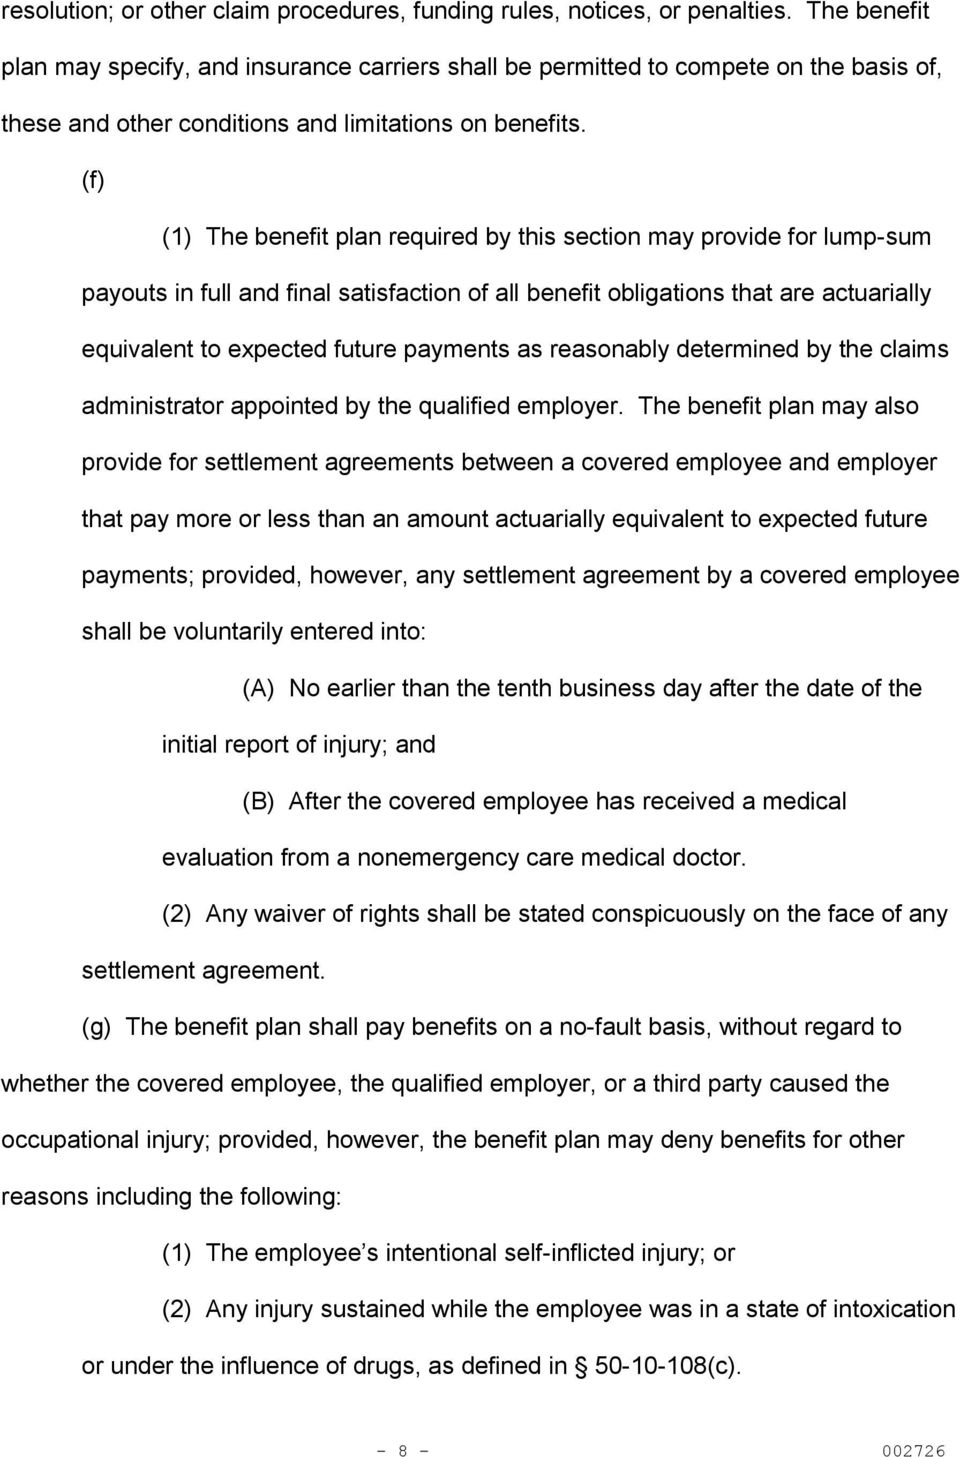 (f) (1) The benefit plan required by this section may provide for lump-sum payouts in full and final satisfaction of all benefit obligations that are actuarially equivalent to expected future